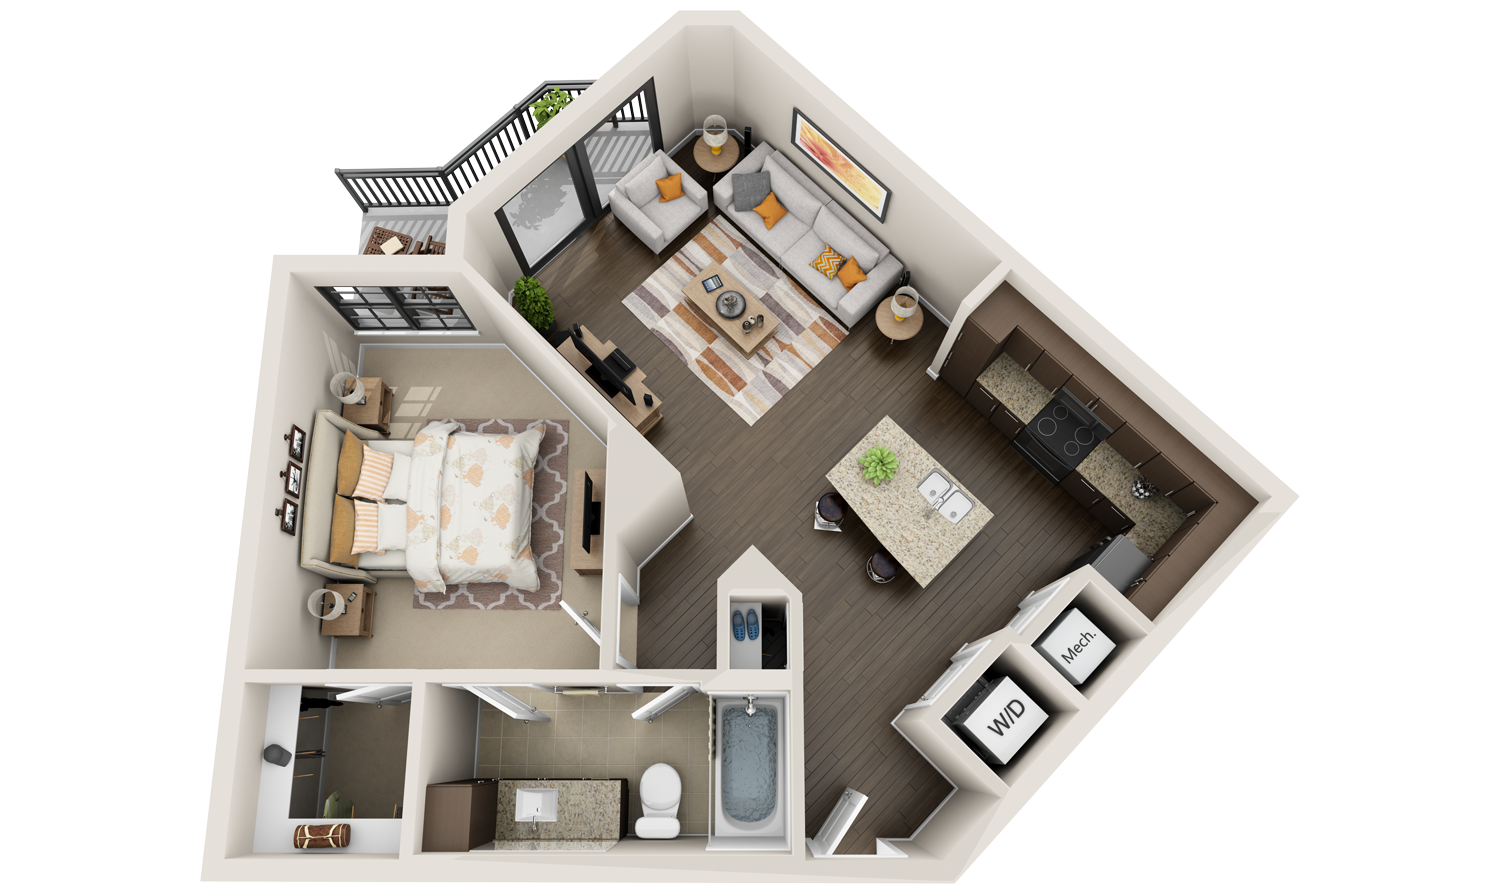 Best 3d floor plans tours for apartments for In plan 3d